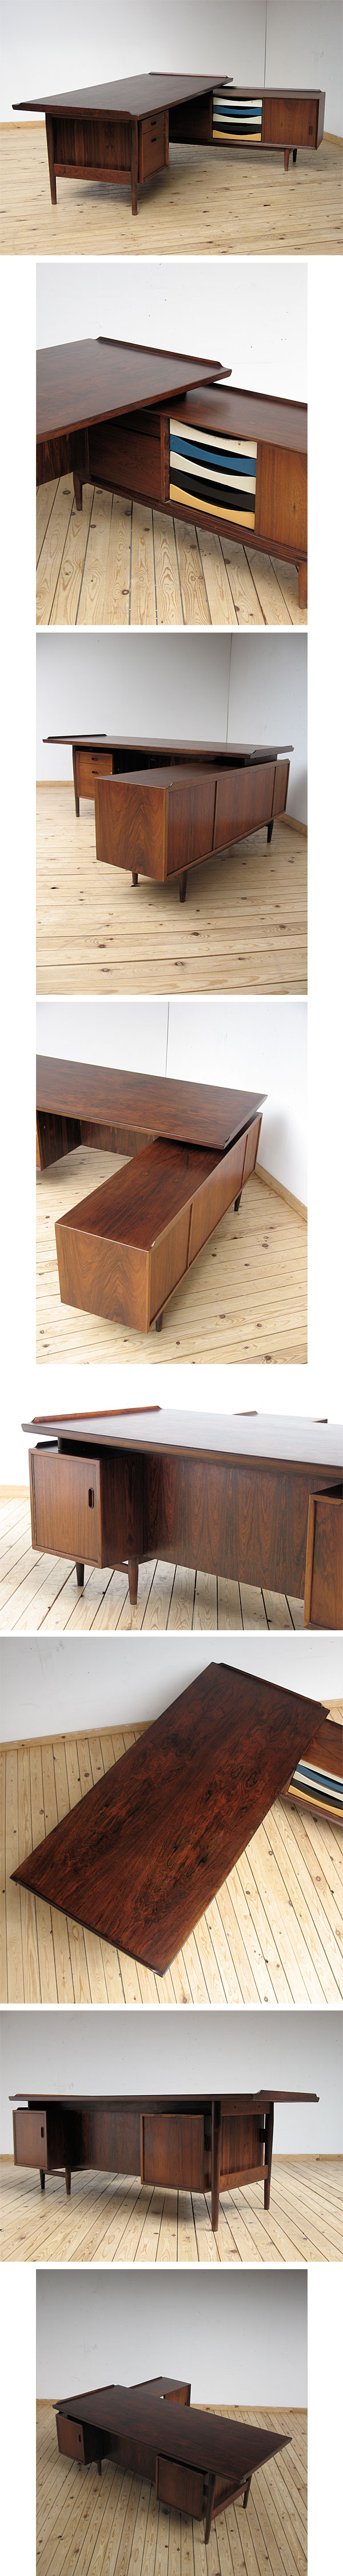 Arne, Vodder, desk, return, Sibast, Furniture, danish, modern